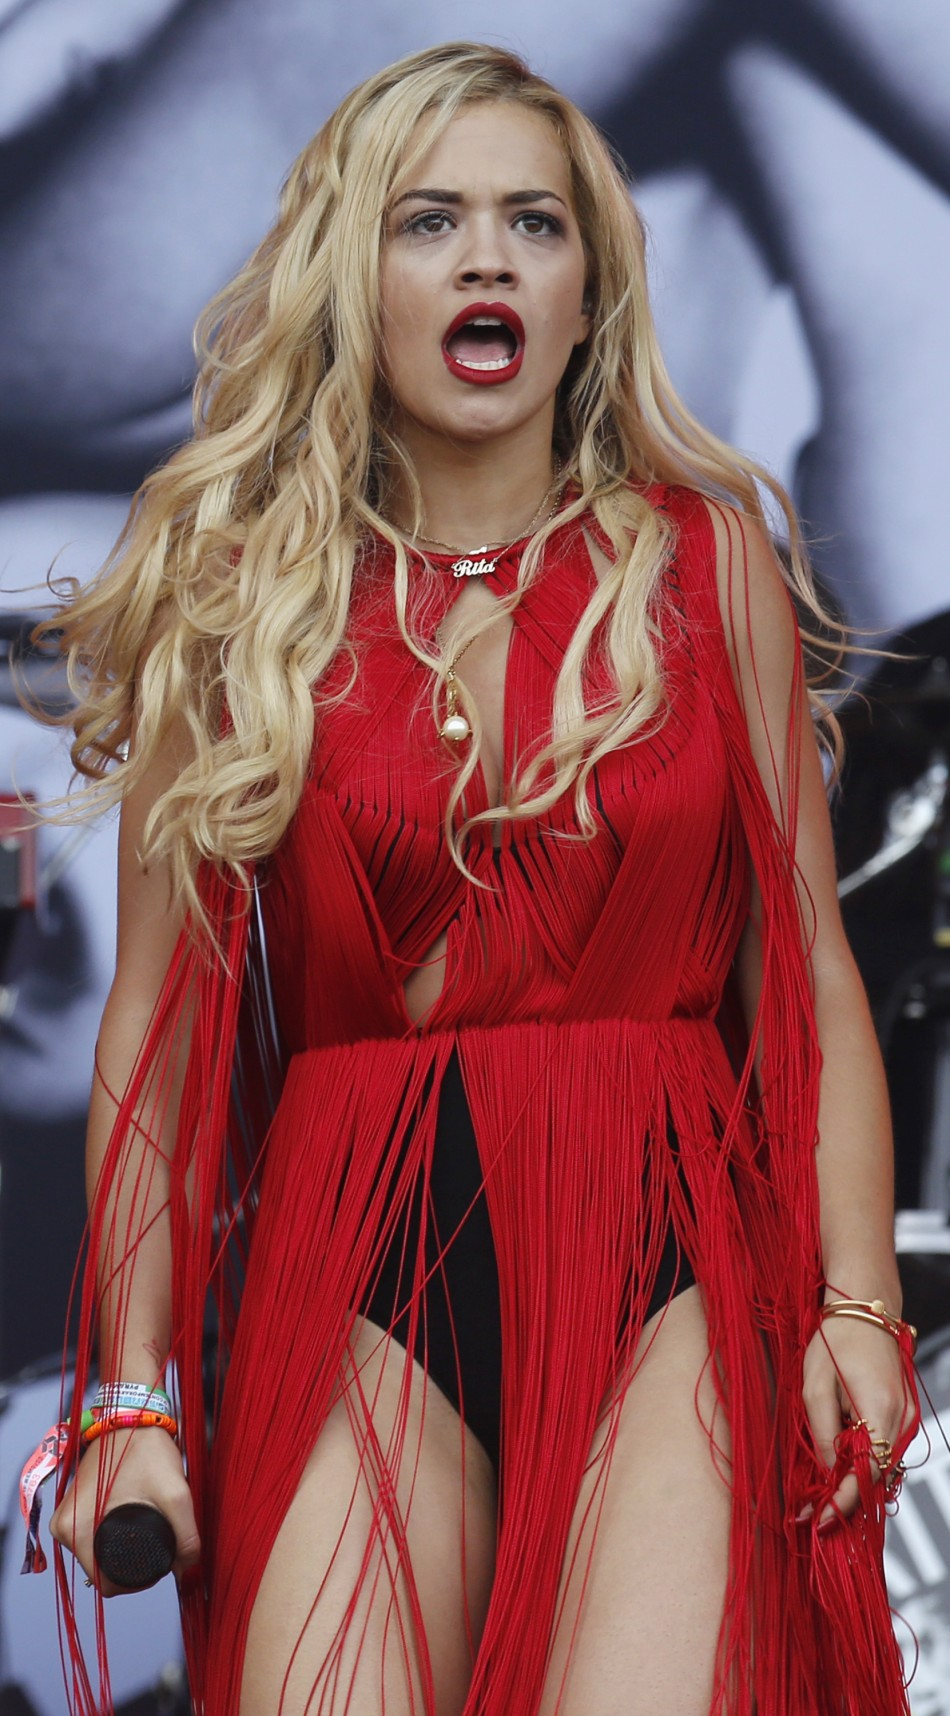 Rita Ora performs at the Pyramid stage on the third day of Glastonbury music festival at Worthy Farm in Somerset June 28, 2013.